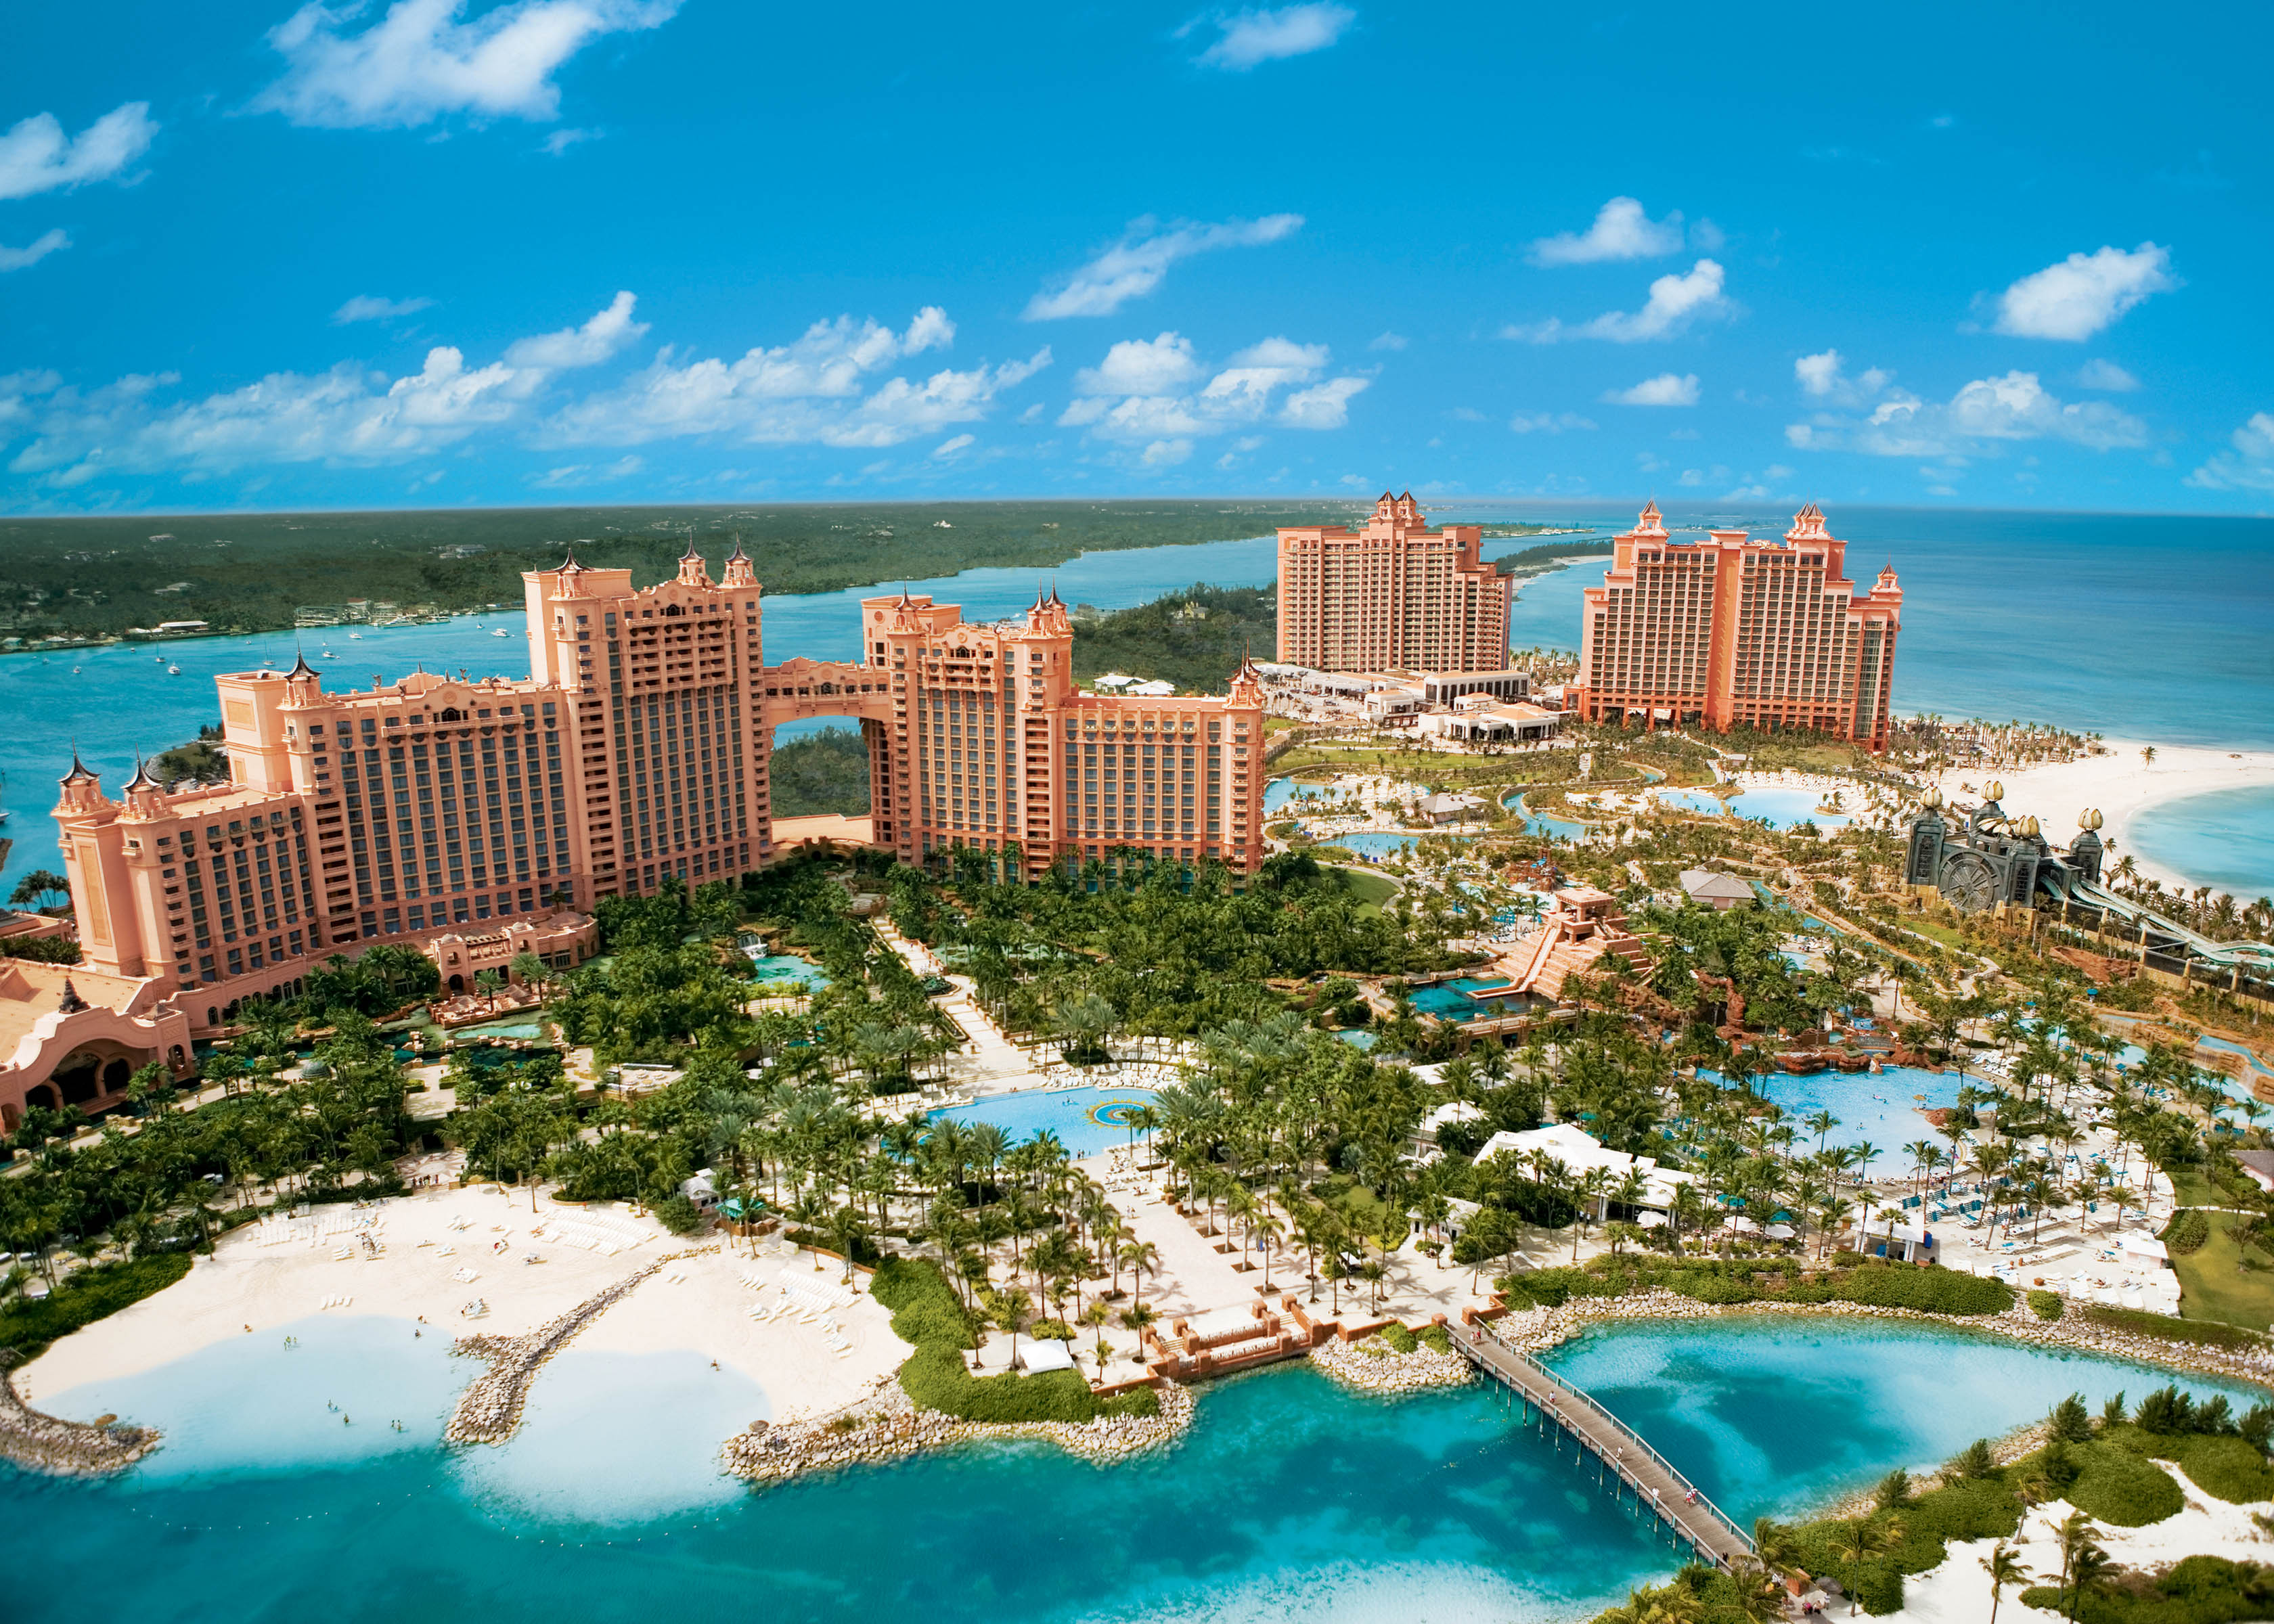 Atlantis Hotel in Bahamas 516.14 Kb